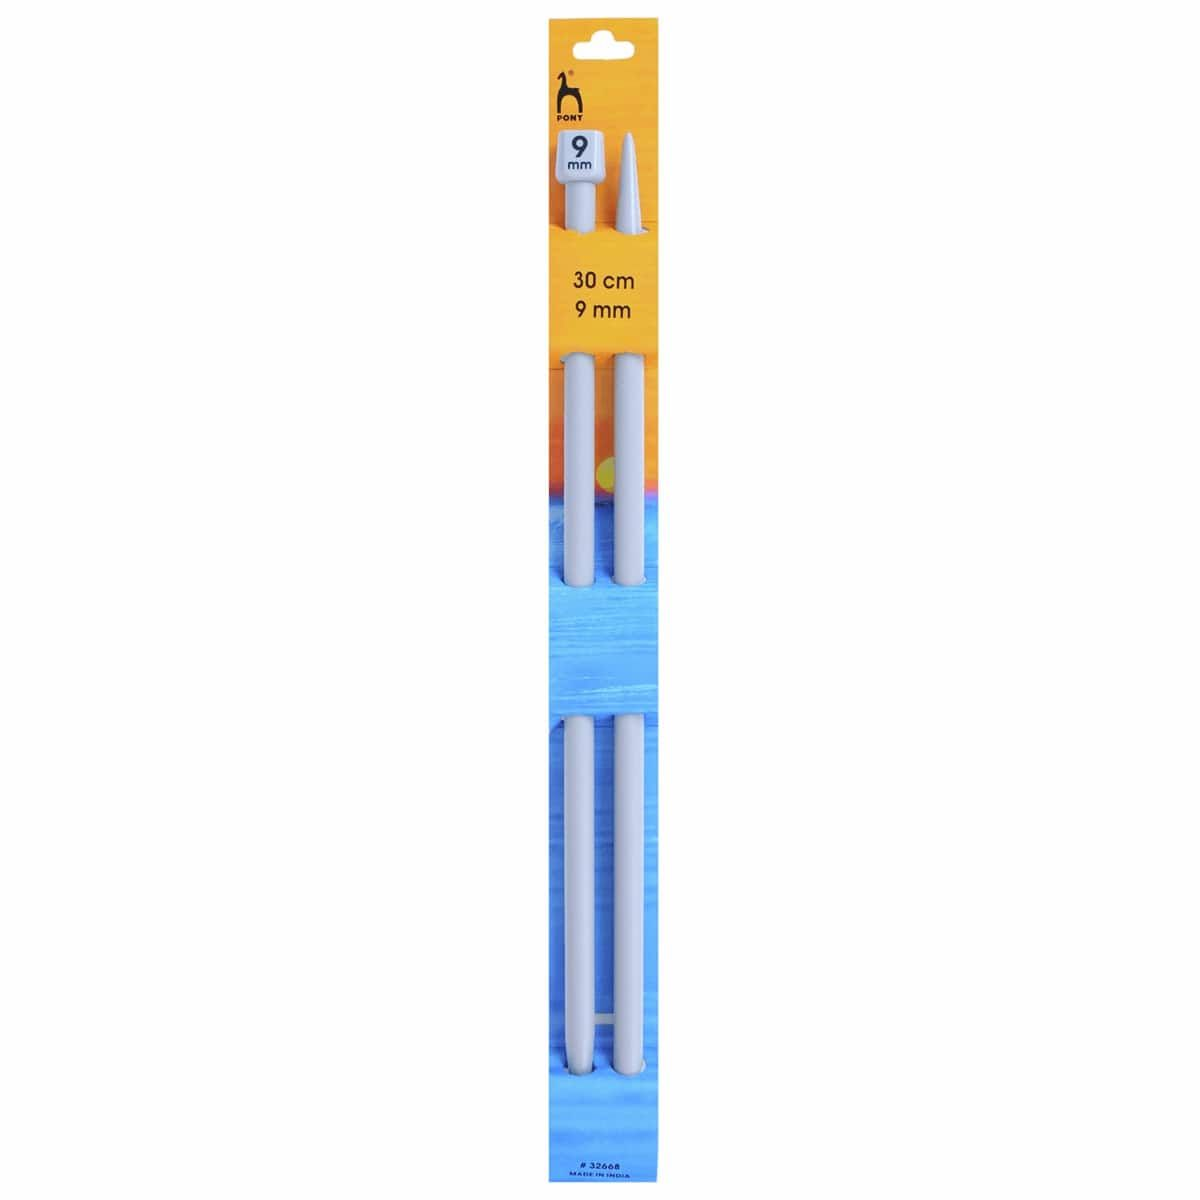 Pony Classic Pair Of Single Ended Knitting Pins - 30cm x 9mm